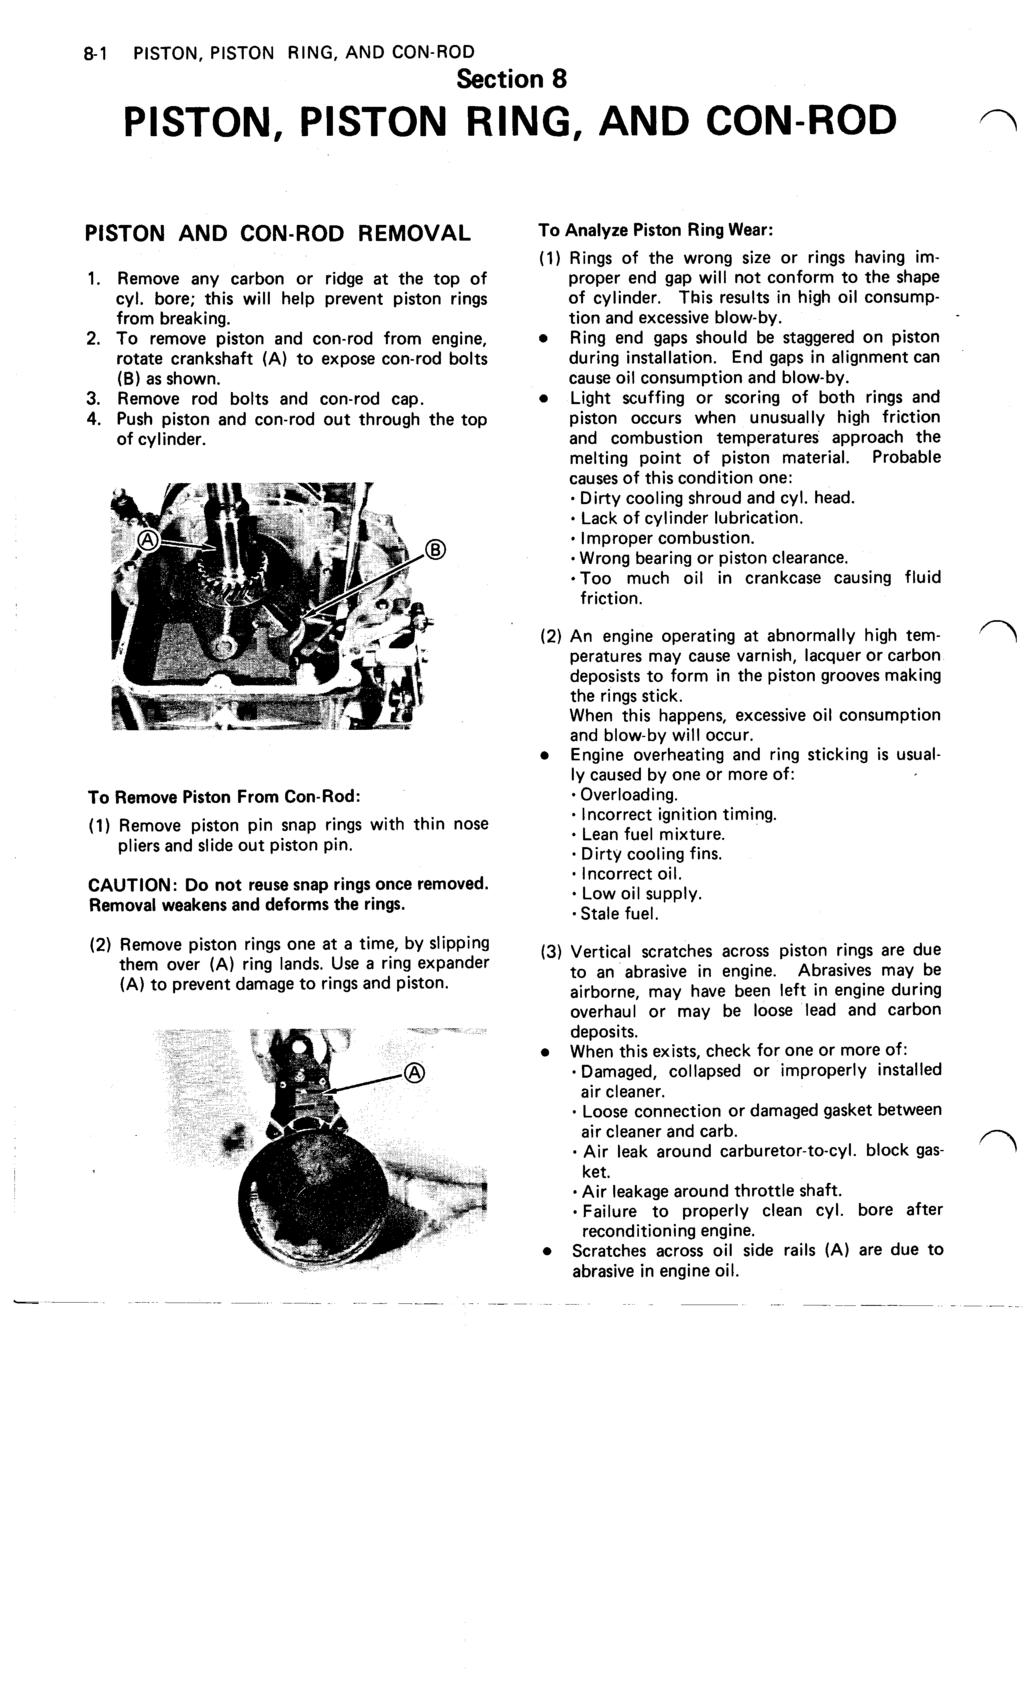 KAWASAKI FB460V ENGINE MANUAL - PDF